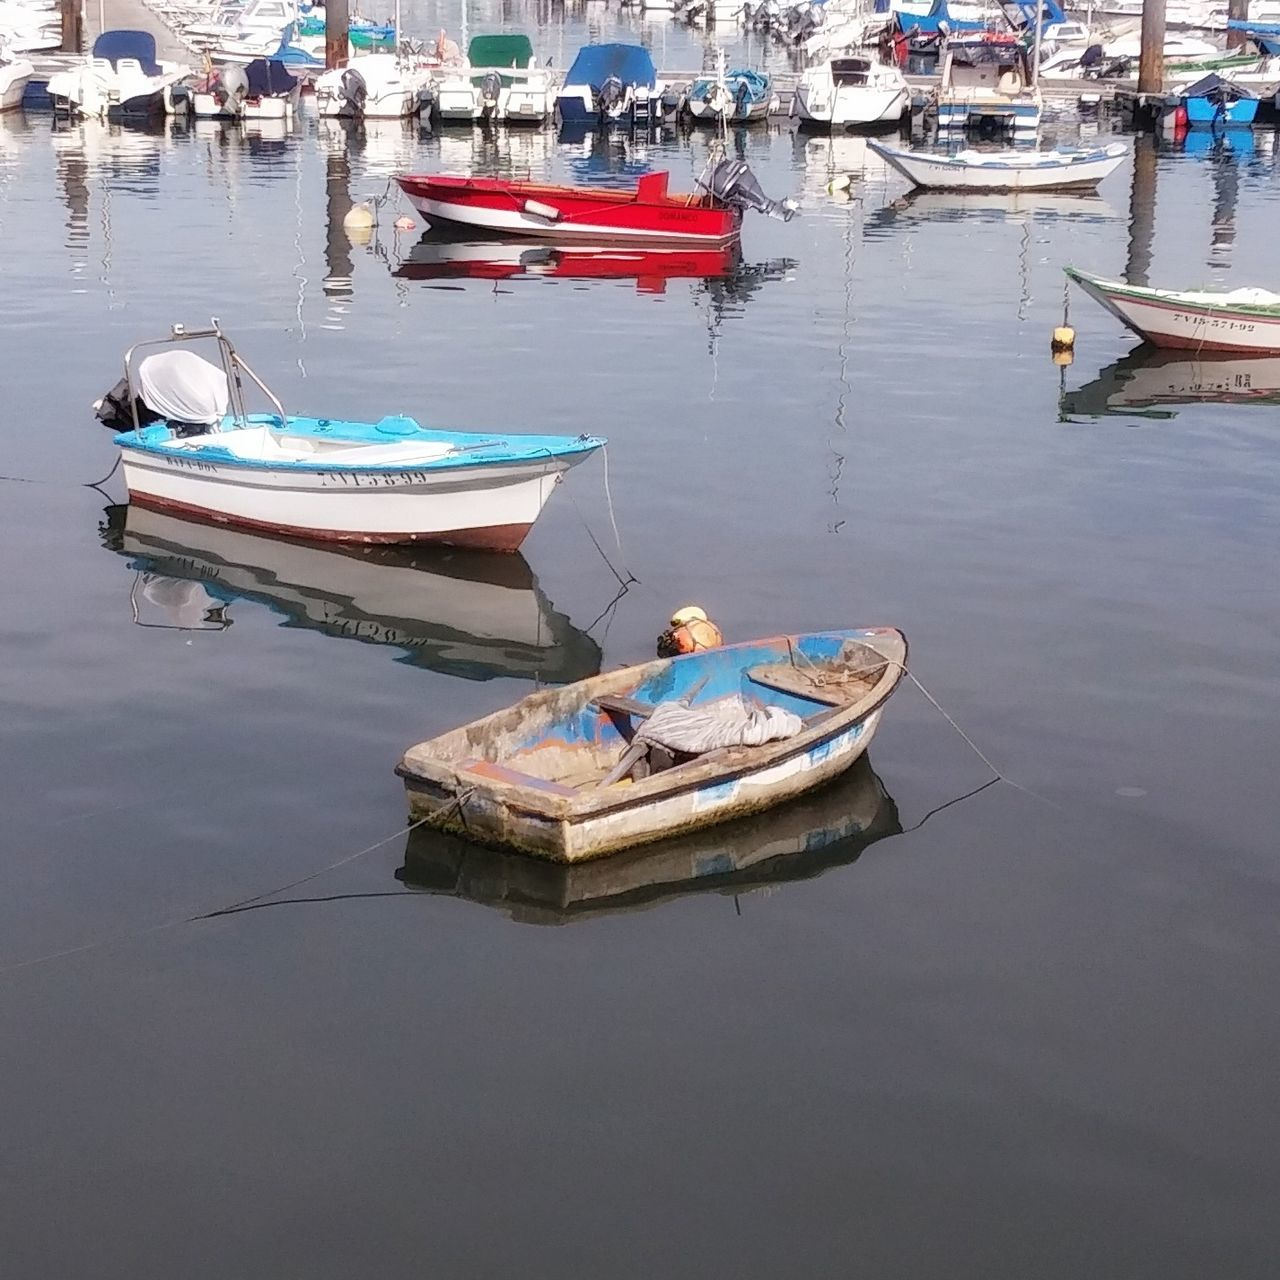 Nautical Vessel Transportation Boat Water Reflection Waterfront Sea Marina Day Dock Harbor Blue Calm